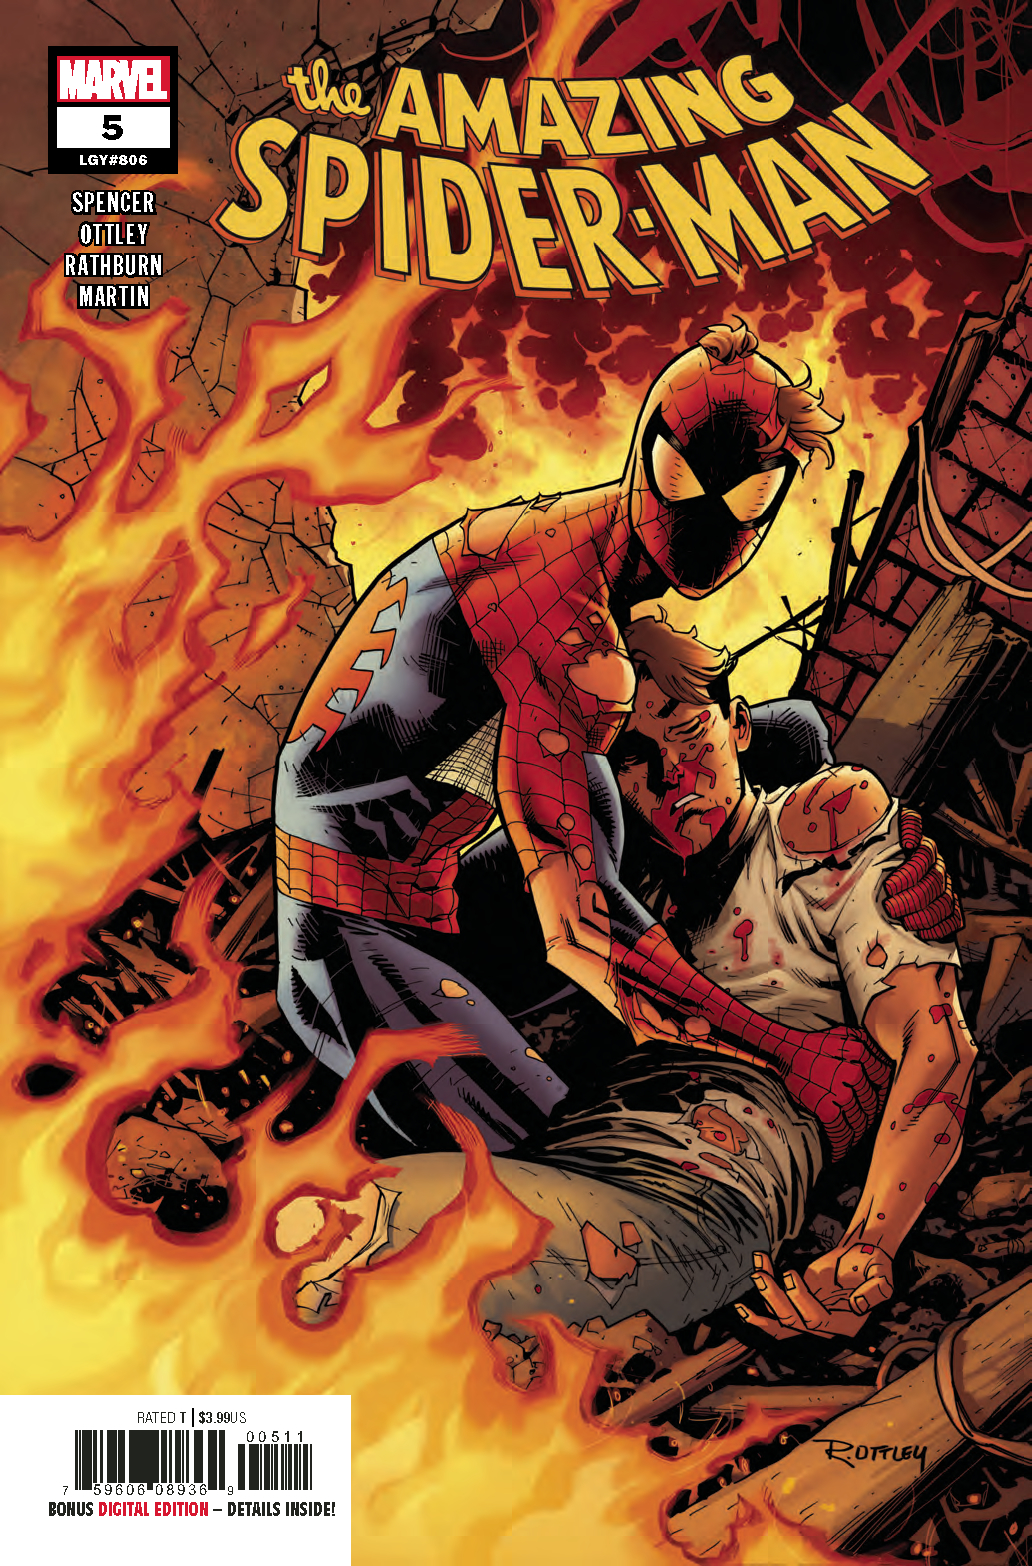 Amazing Spider-Man #5  is out 9/12.